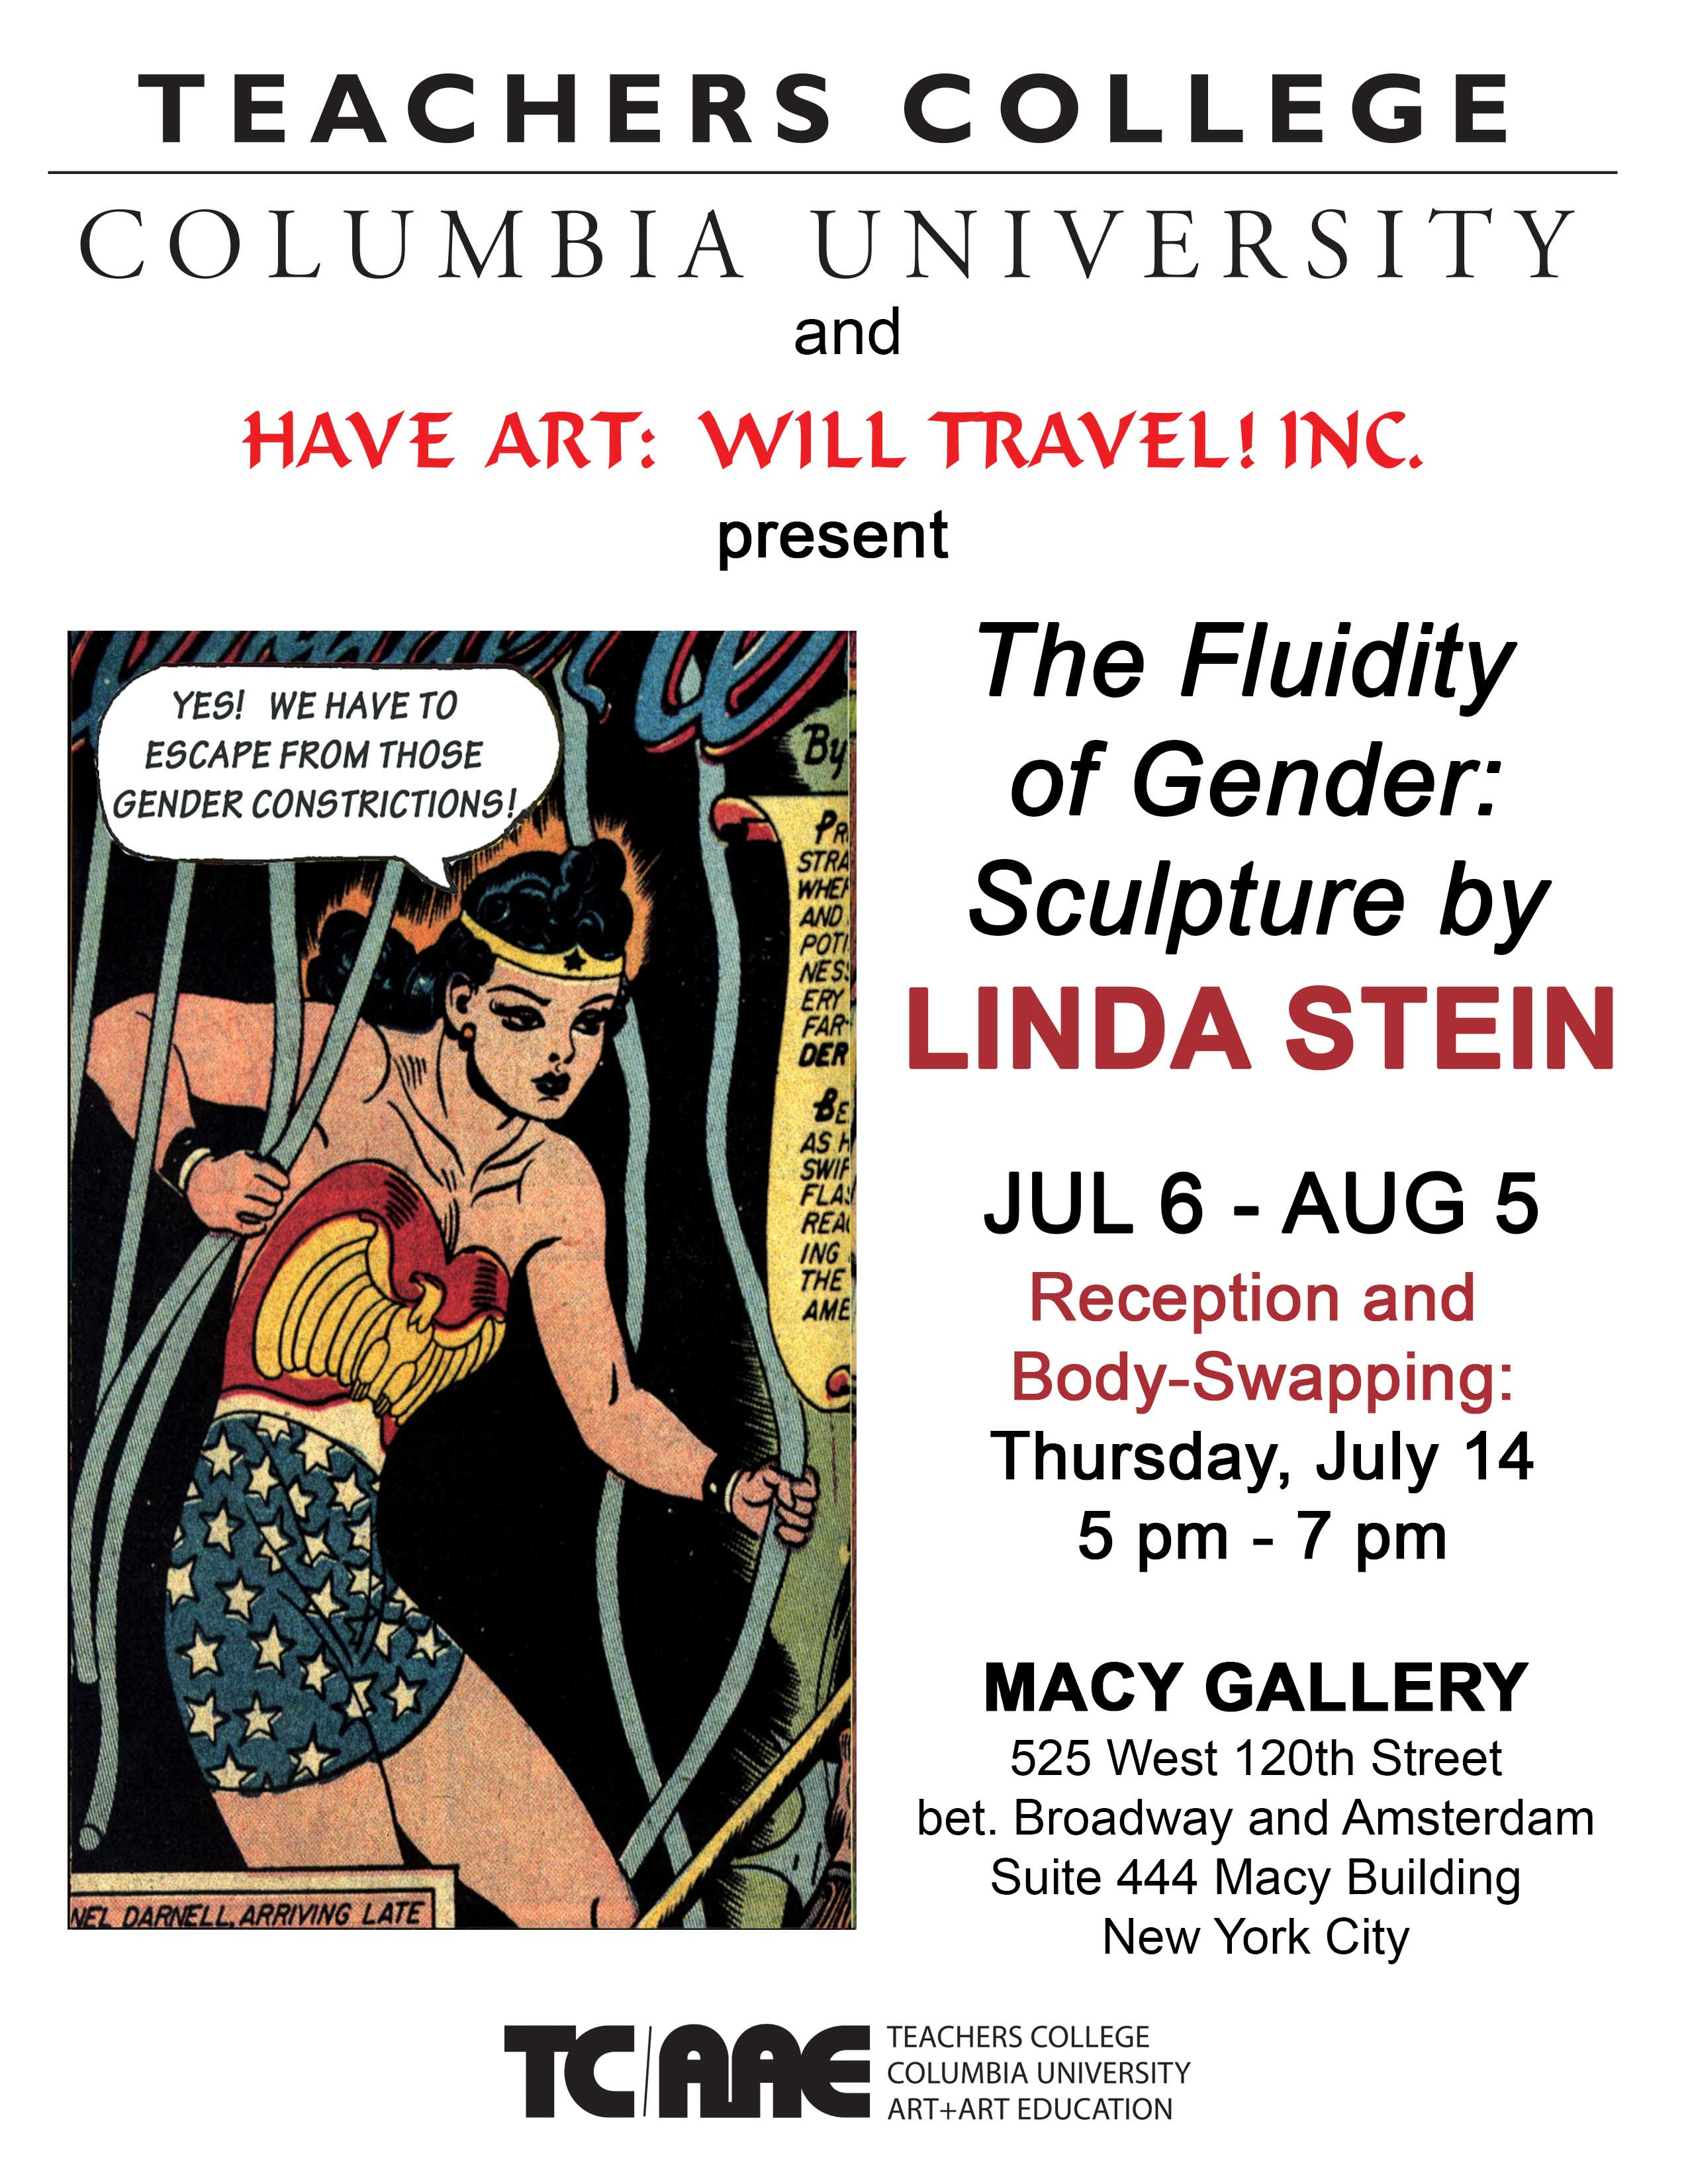 MACY GALLERY RECEPTION | The Fluidity of Gender: Sculpture by Linda Stein